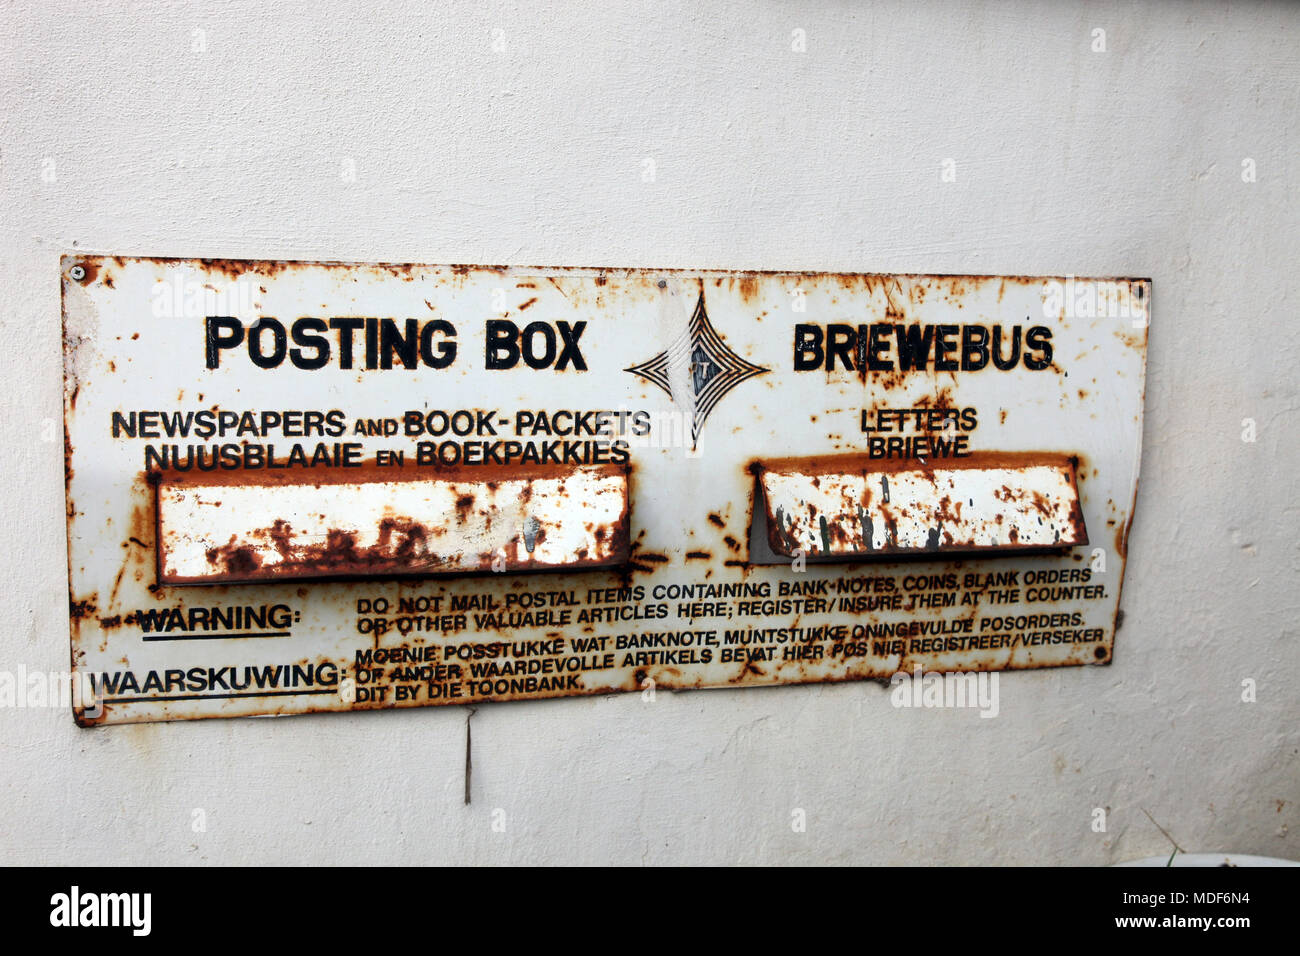 Vintage South African post box on show at Napier Farm Stall, Western Cape, South Africa - Stock Image